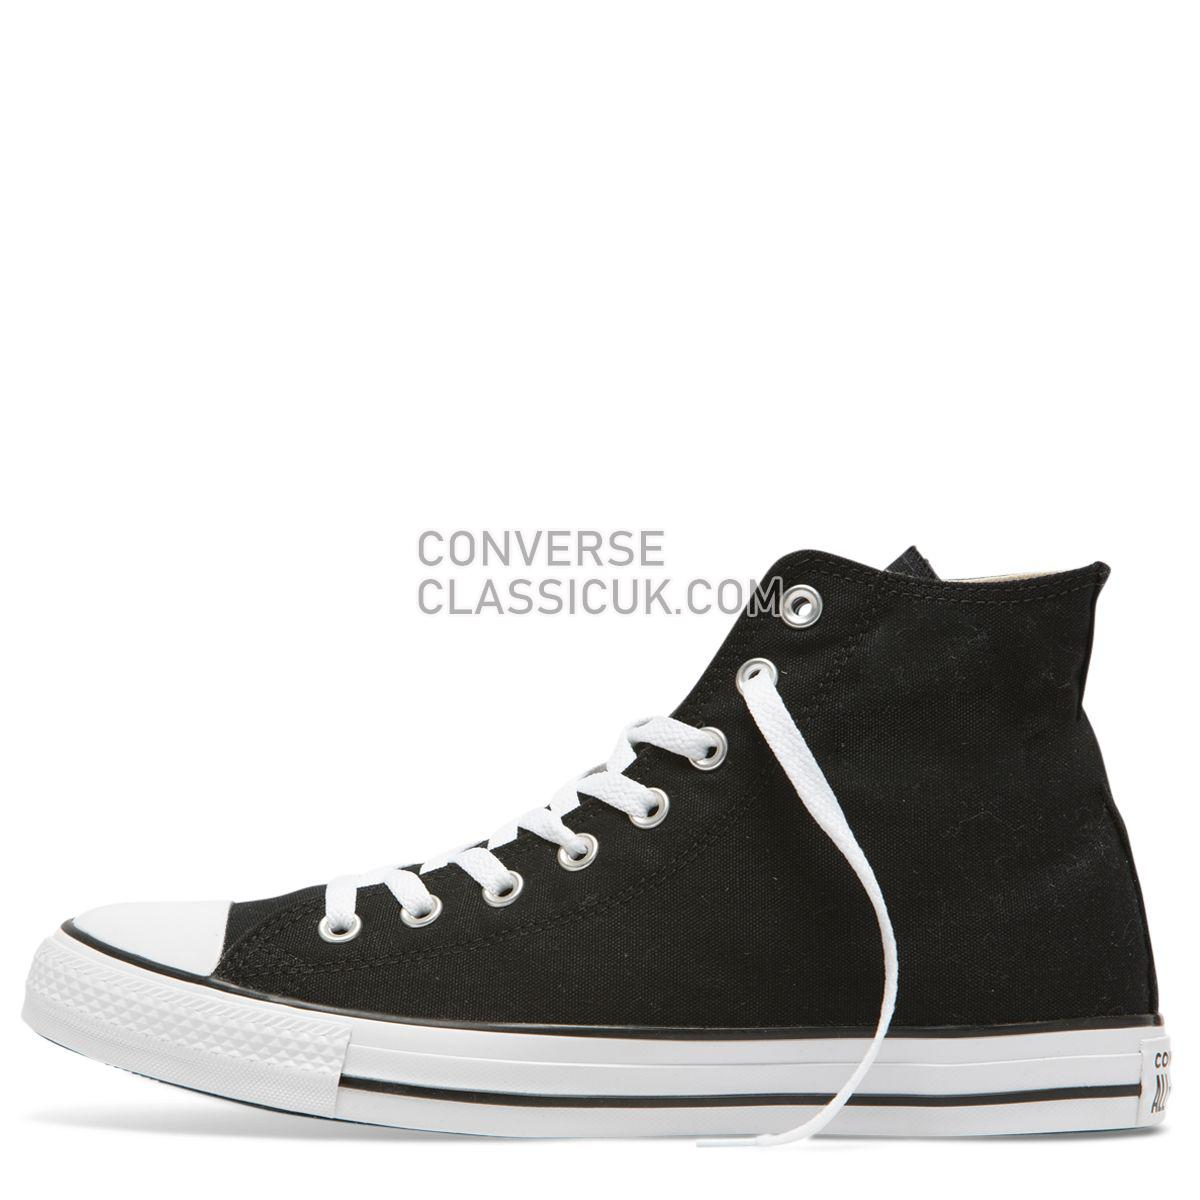 Converse Chuck Taylor All Star Oversized Logo High Top Black Mens Womens Unisex 165694 Black/White/Black Shoes